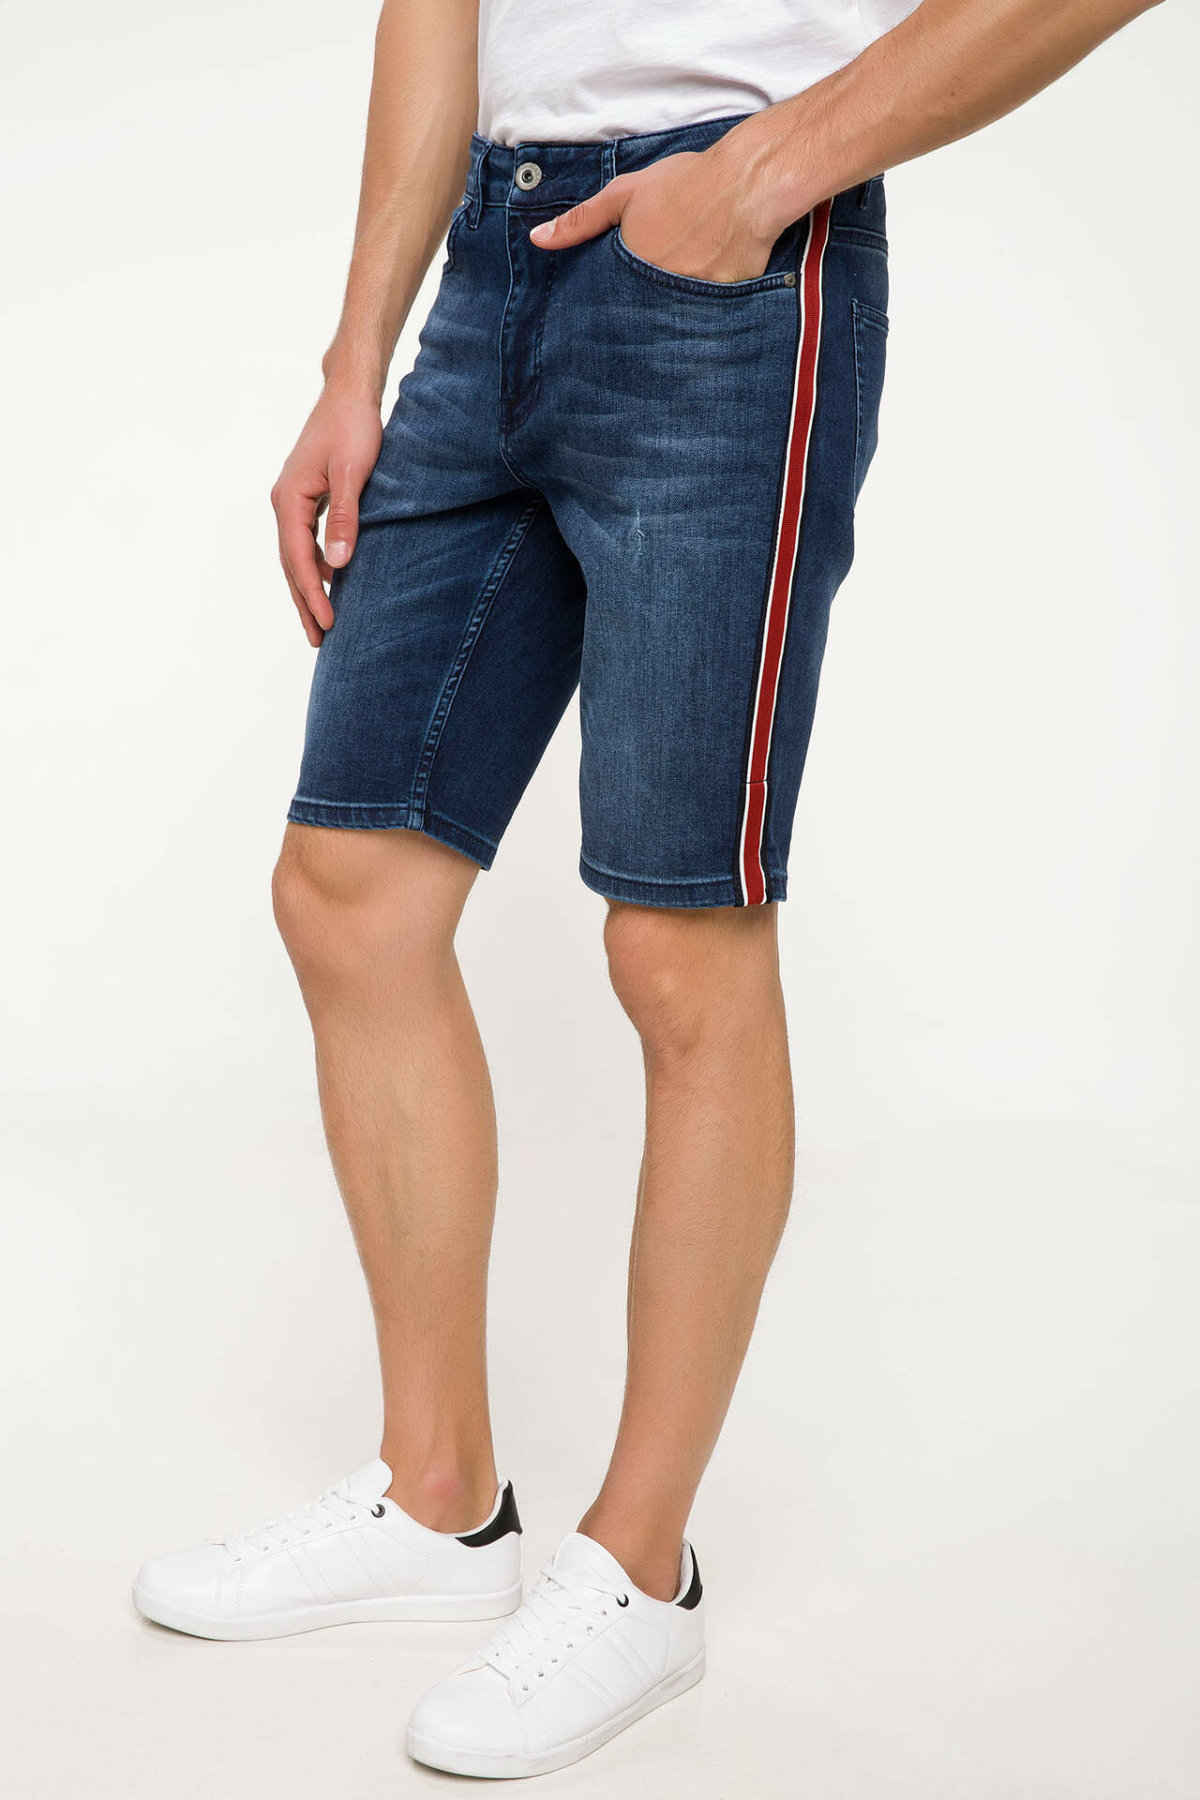 DeFacto Man Summer Blue Denim Shorts Men Casual Straight Denim Bottoms Male Red Striped Decors Bermuda Short-J2748AZ18SM